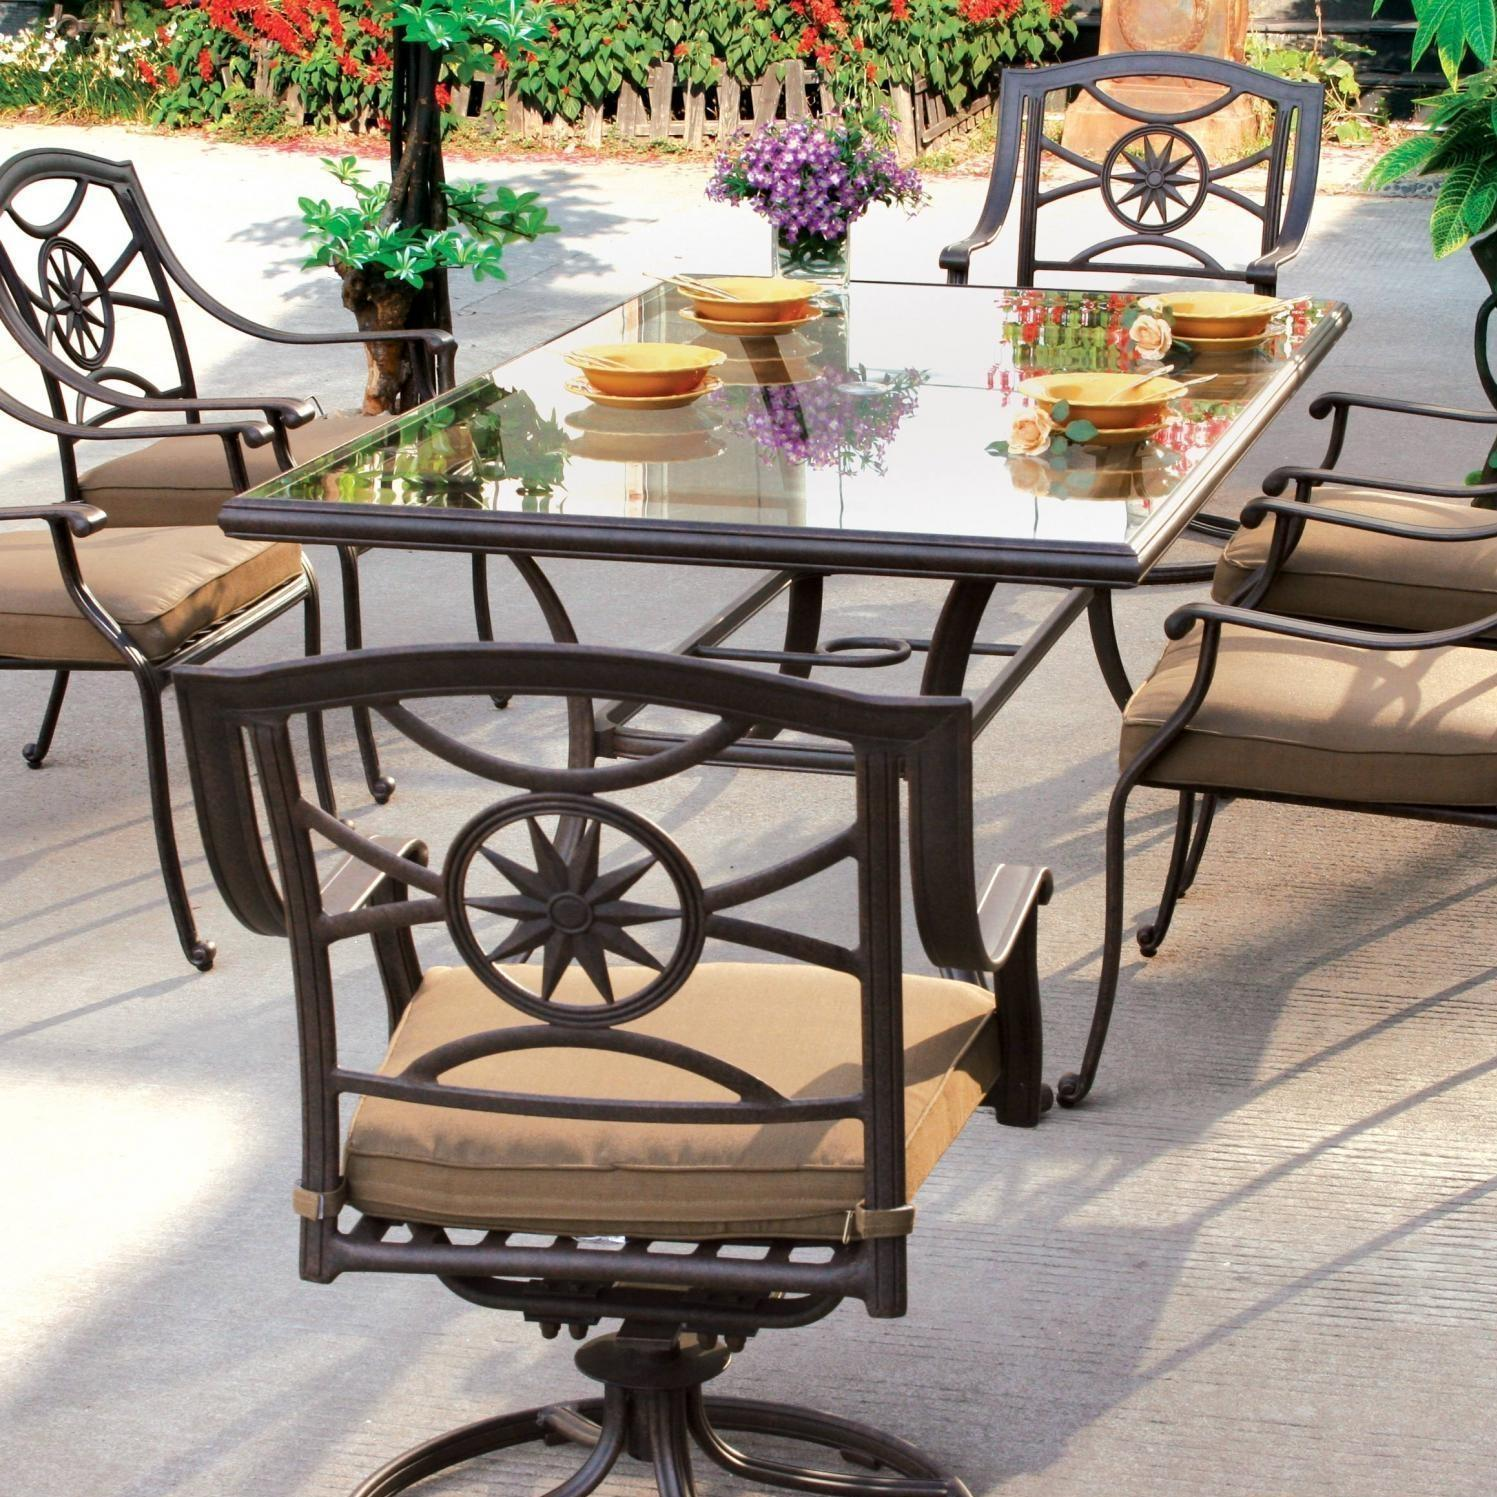 Glass Top Outdoor Table Darlee Ten Star 7 Piece Patio Dining Set Aluminum Glass Top